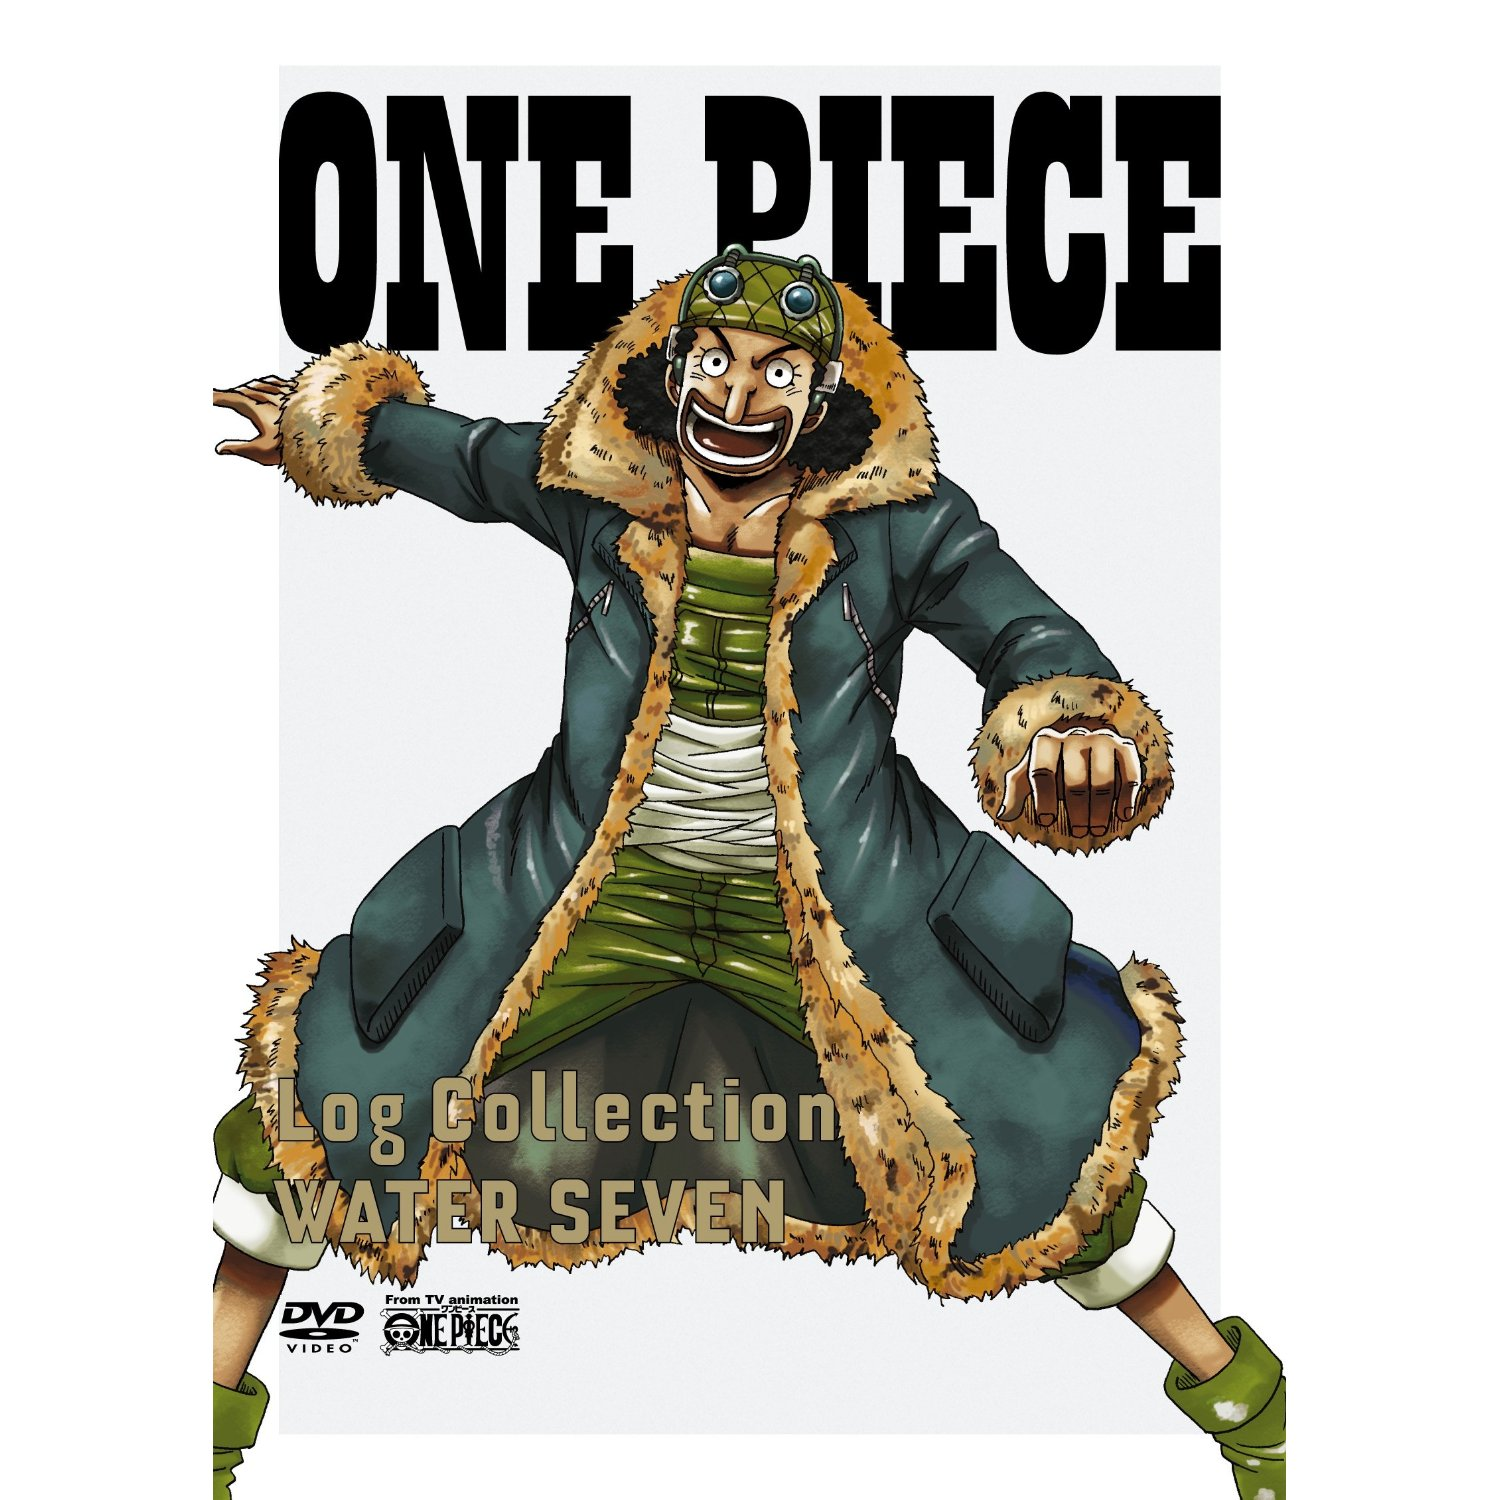 One piece one piece log collection water seven minitokyo - Toei animation one piece ...